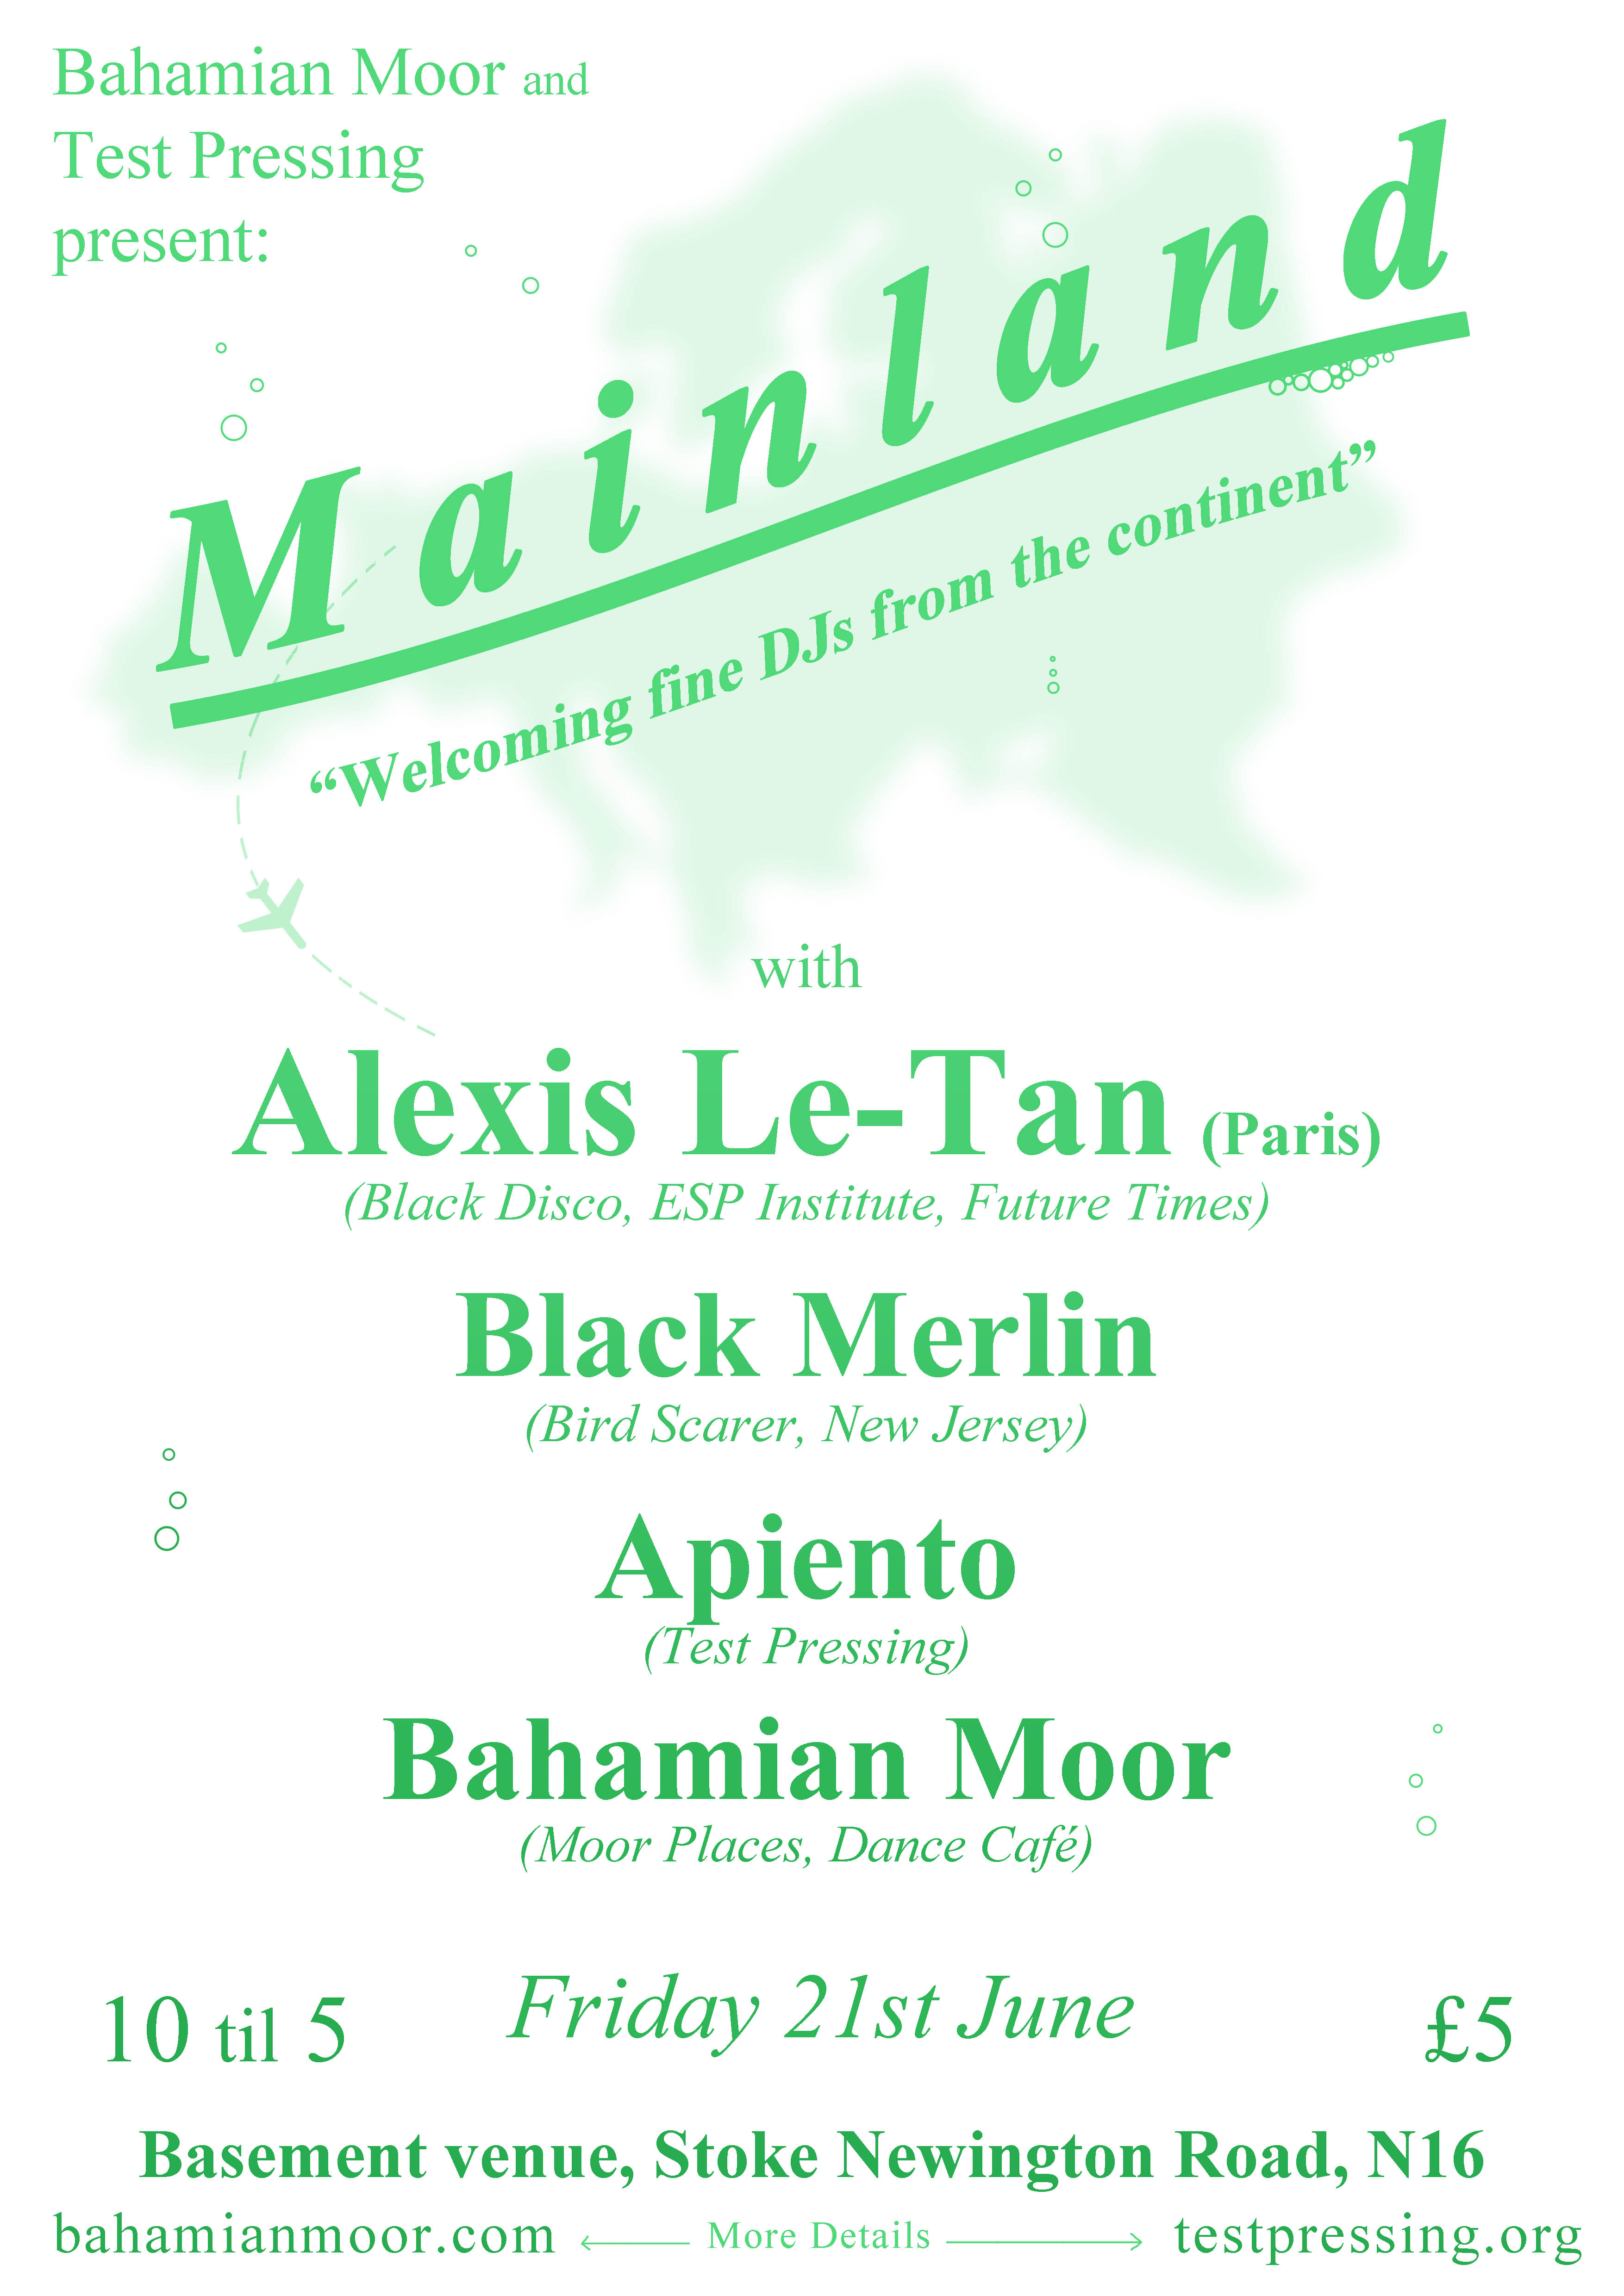 Alexis Le-Tan, Bahamian Moor, Apiento, Black Merlin, Party